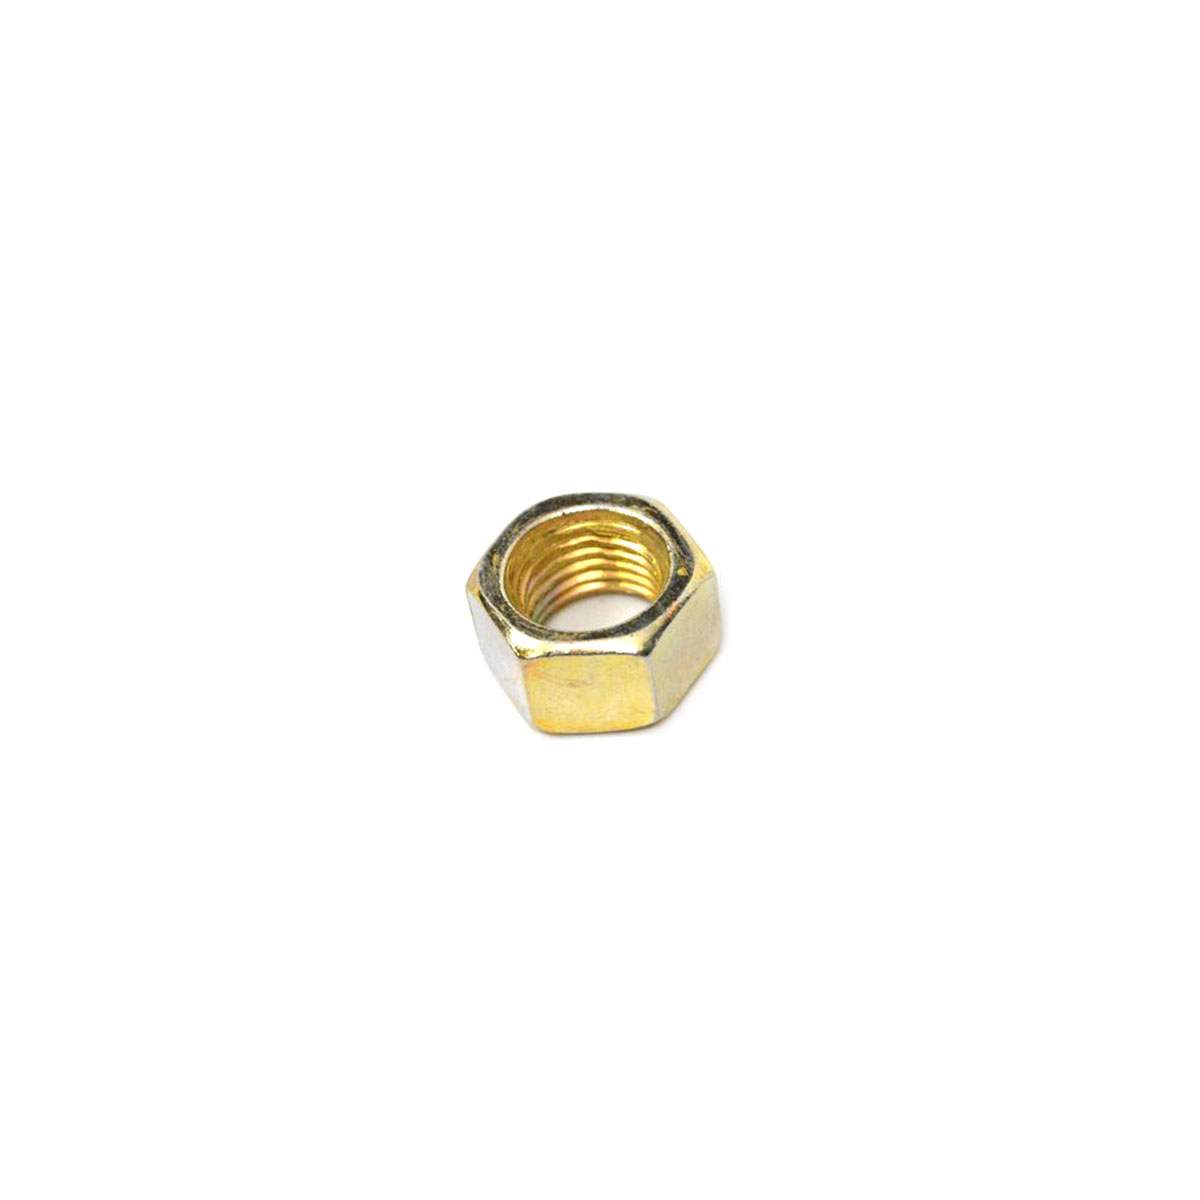 Scag Unf-2B (LH) Thread Nut 3/8-24 04020-17